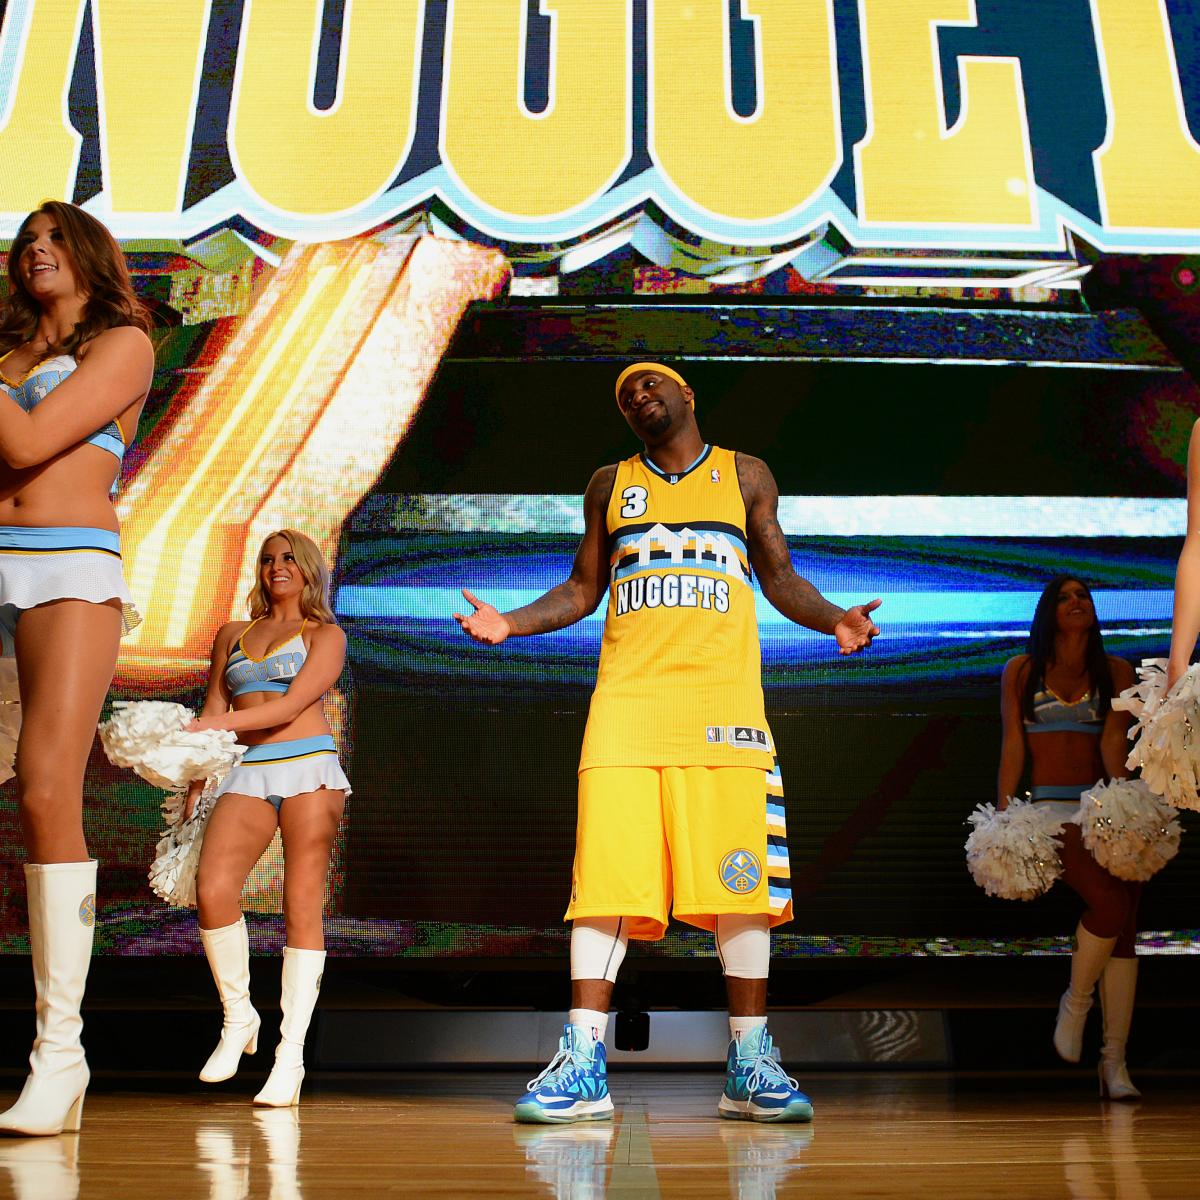 Denver Nuggets Preview 2013-14: Lineup, Roster Predictions